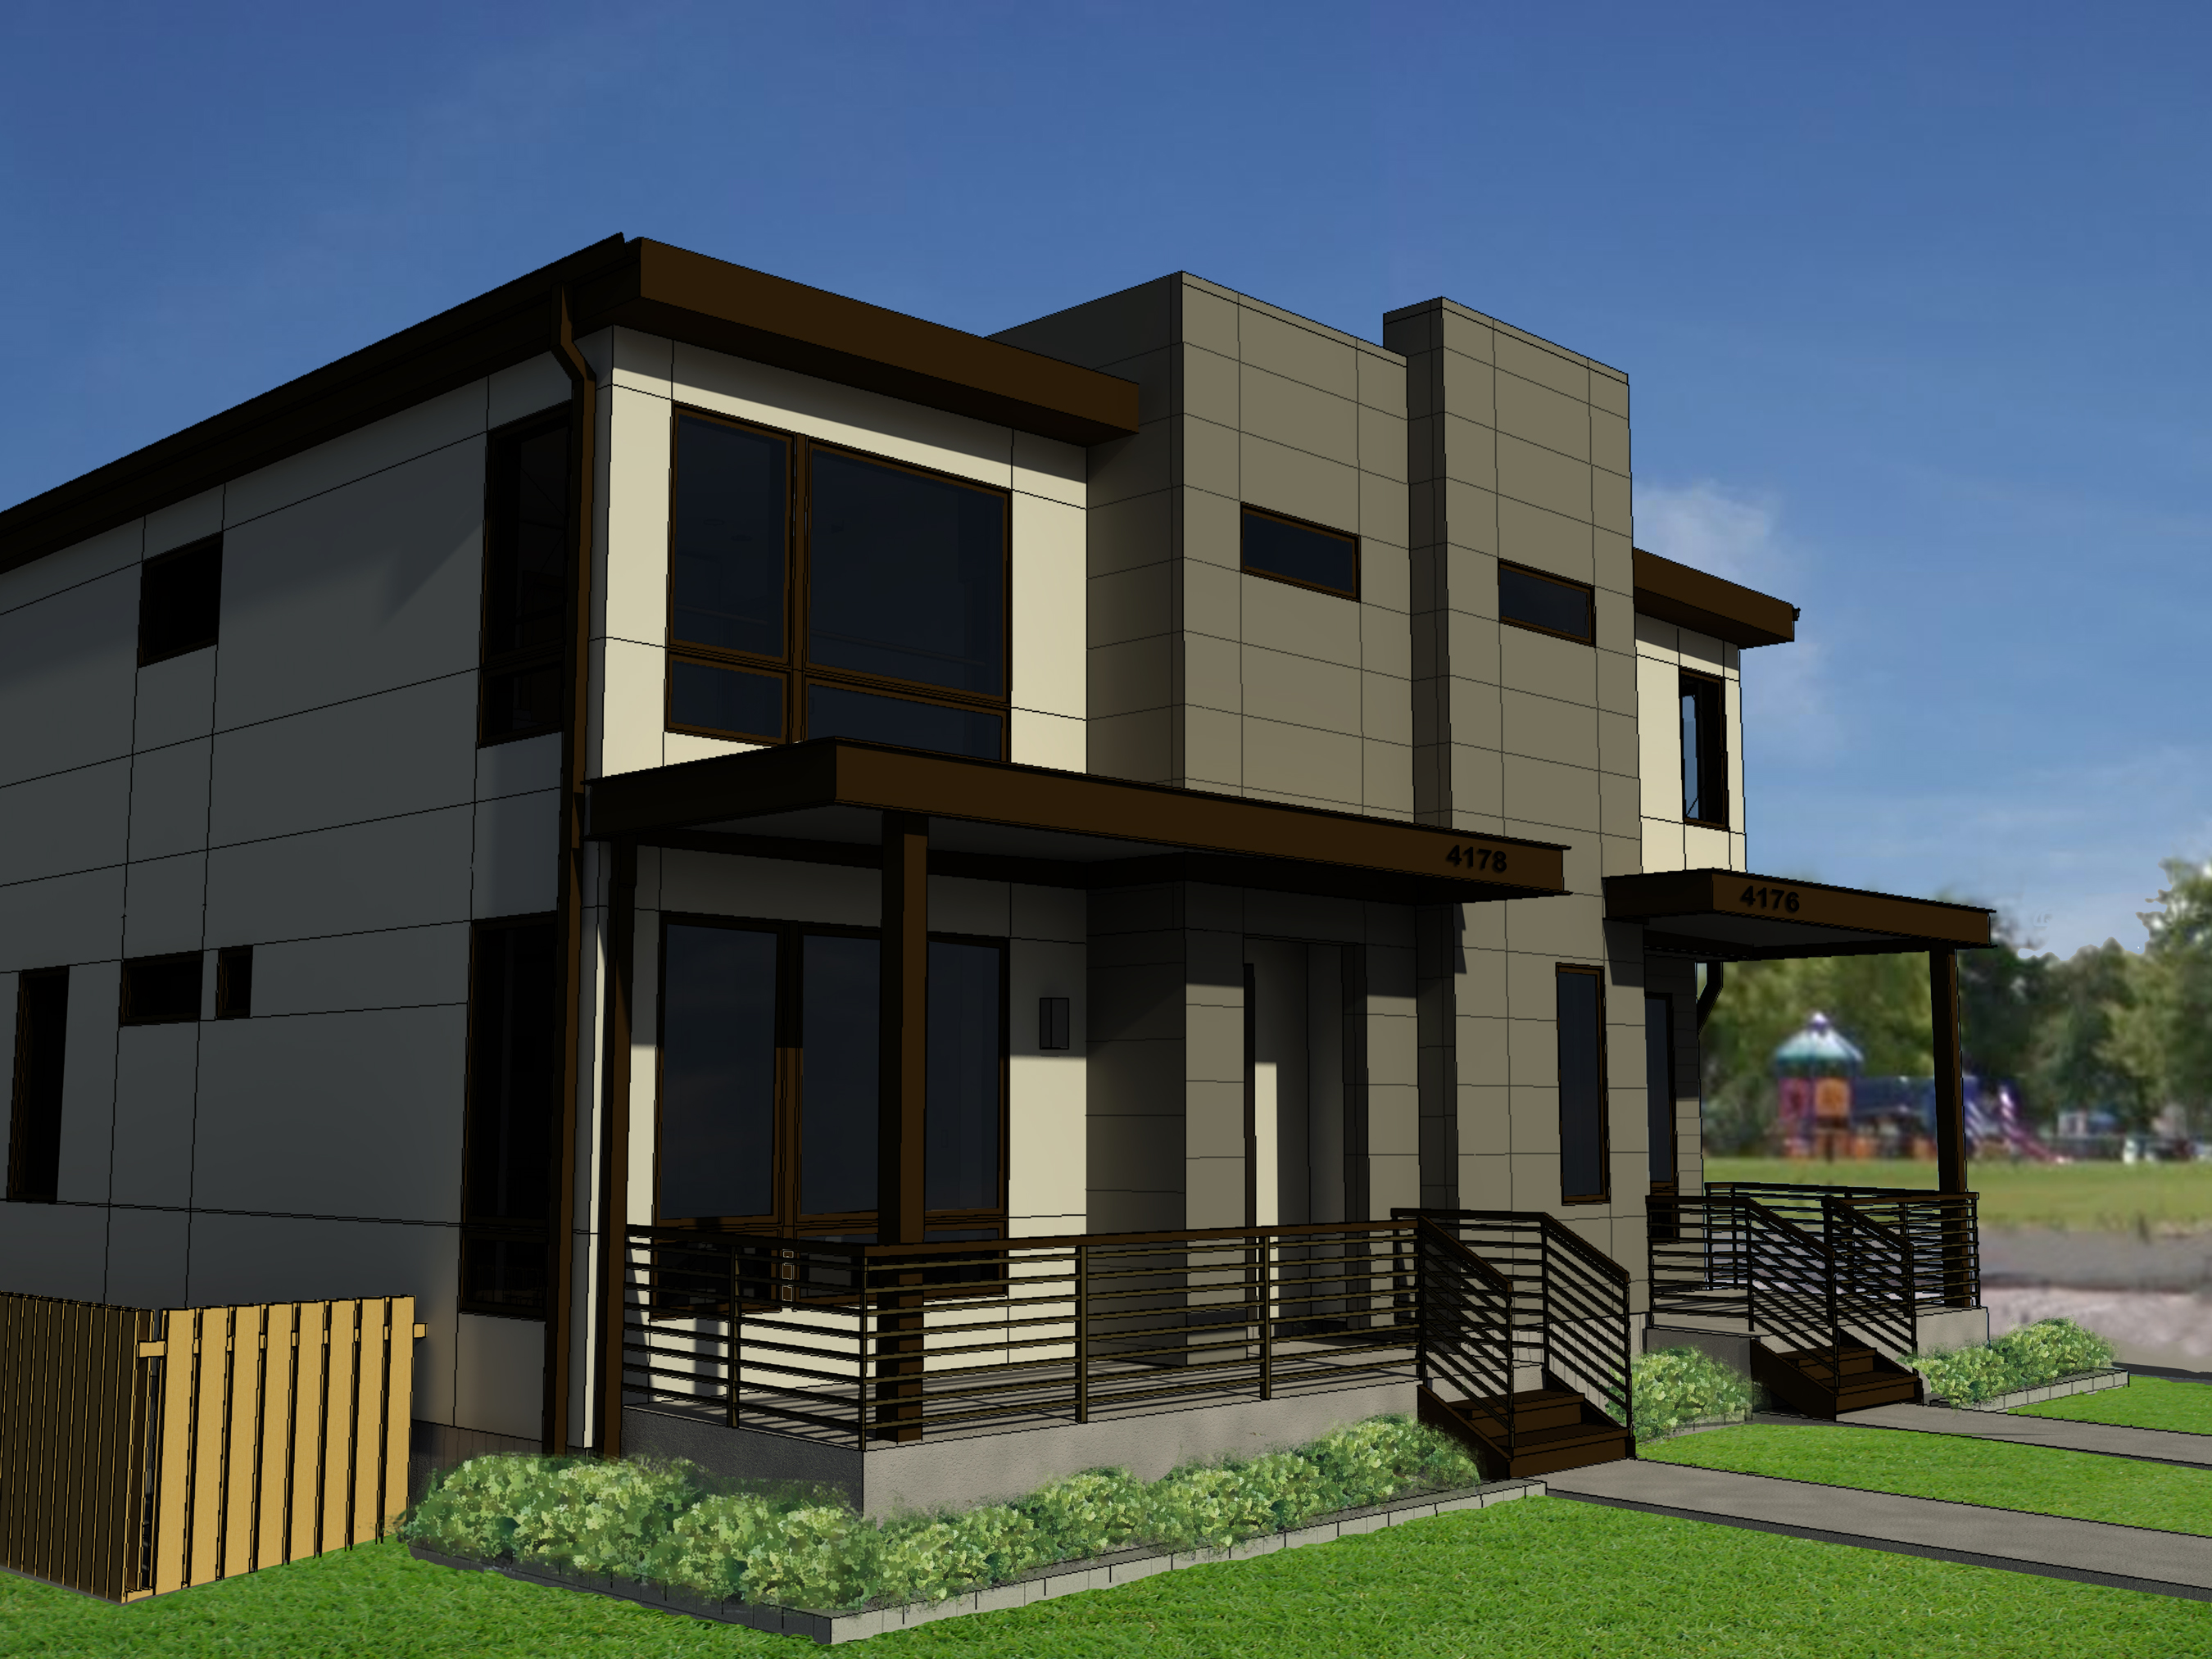 Single Family Home for Sale at New Construction! 4178 Utica Street Denver, Colorado 80212 United States